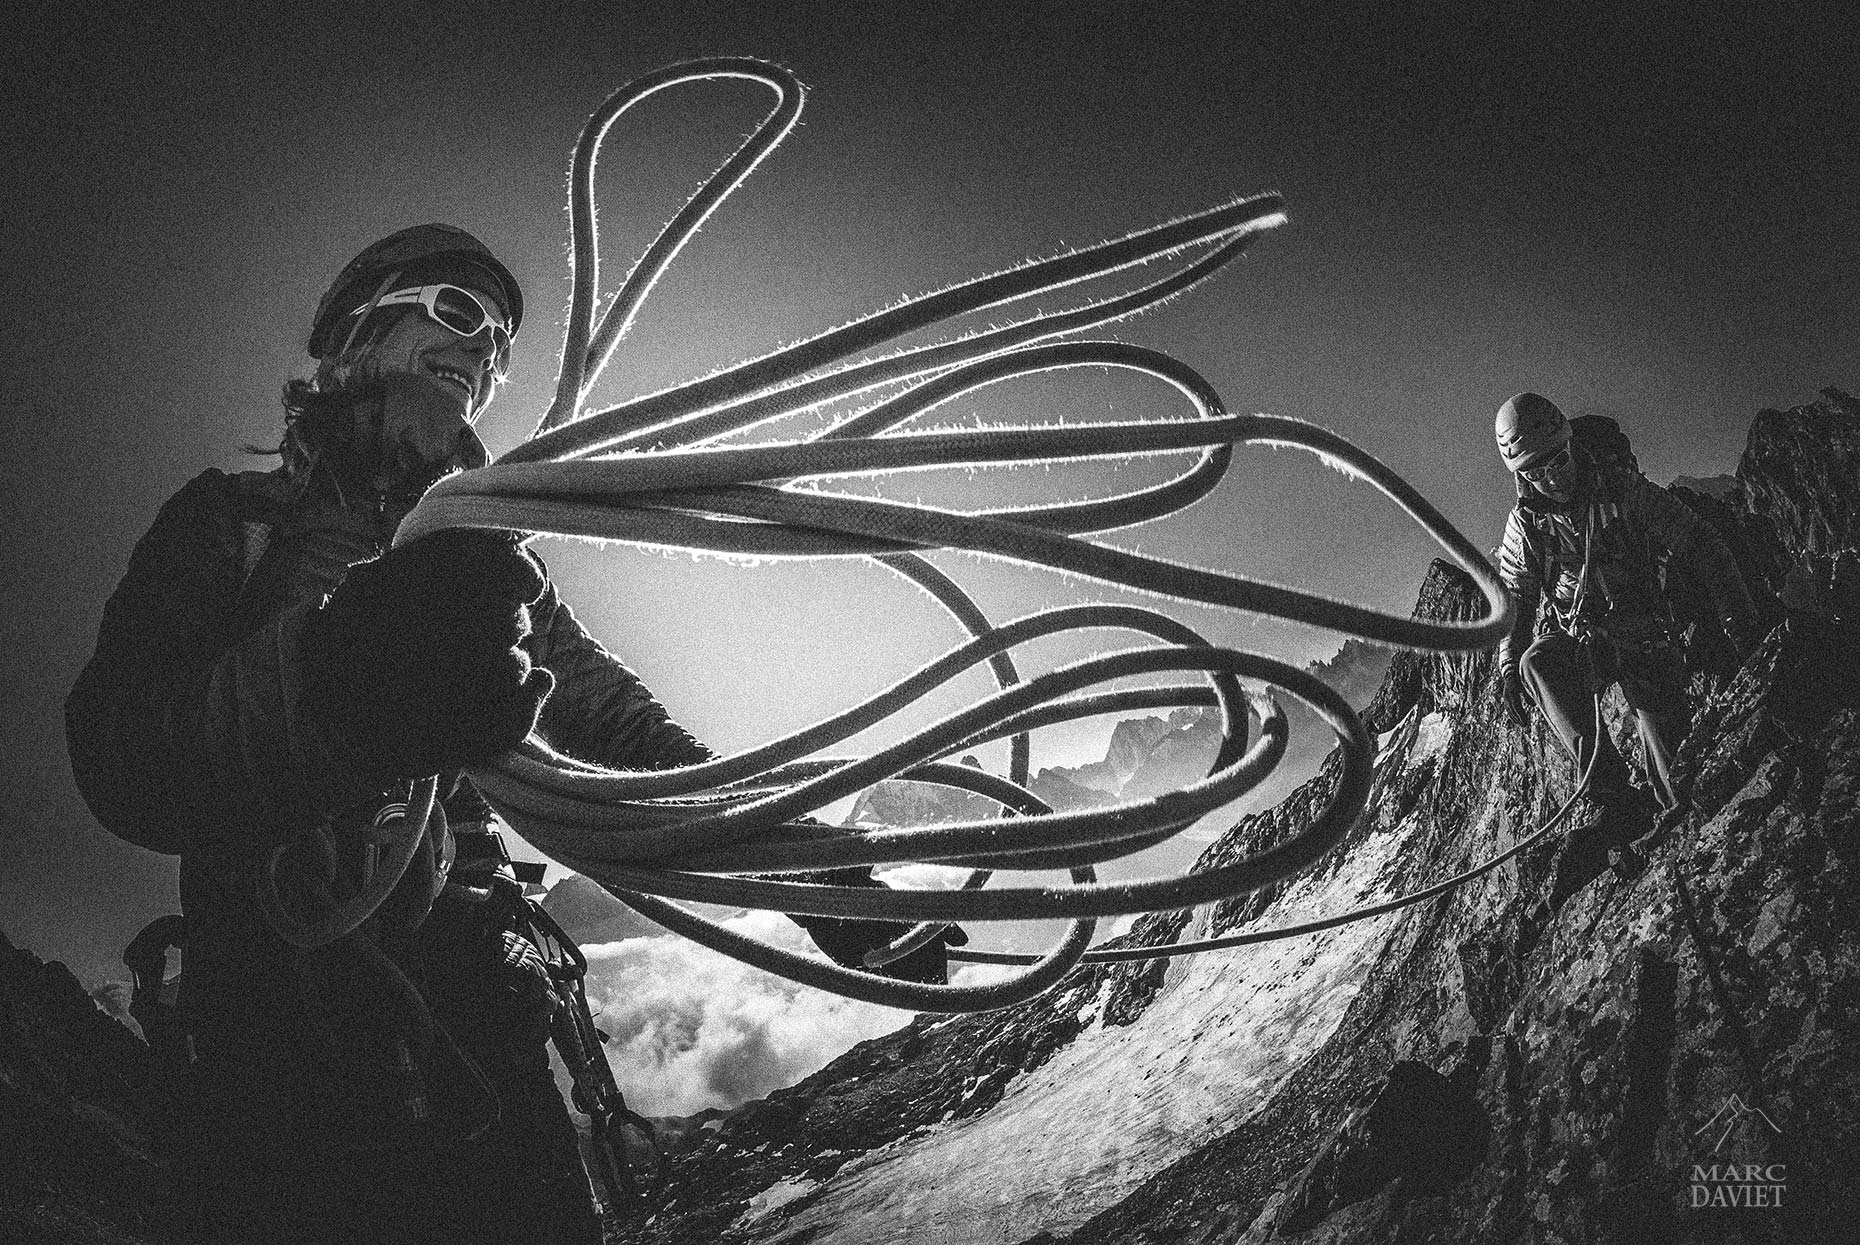 Rope and climbers - Marc Daviet Photography